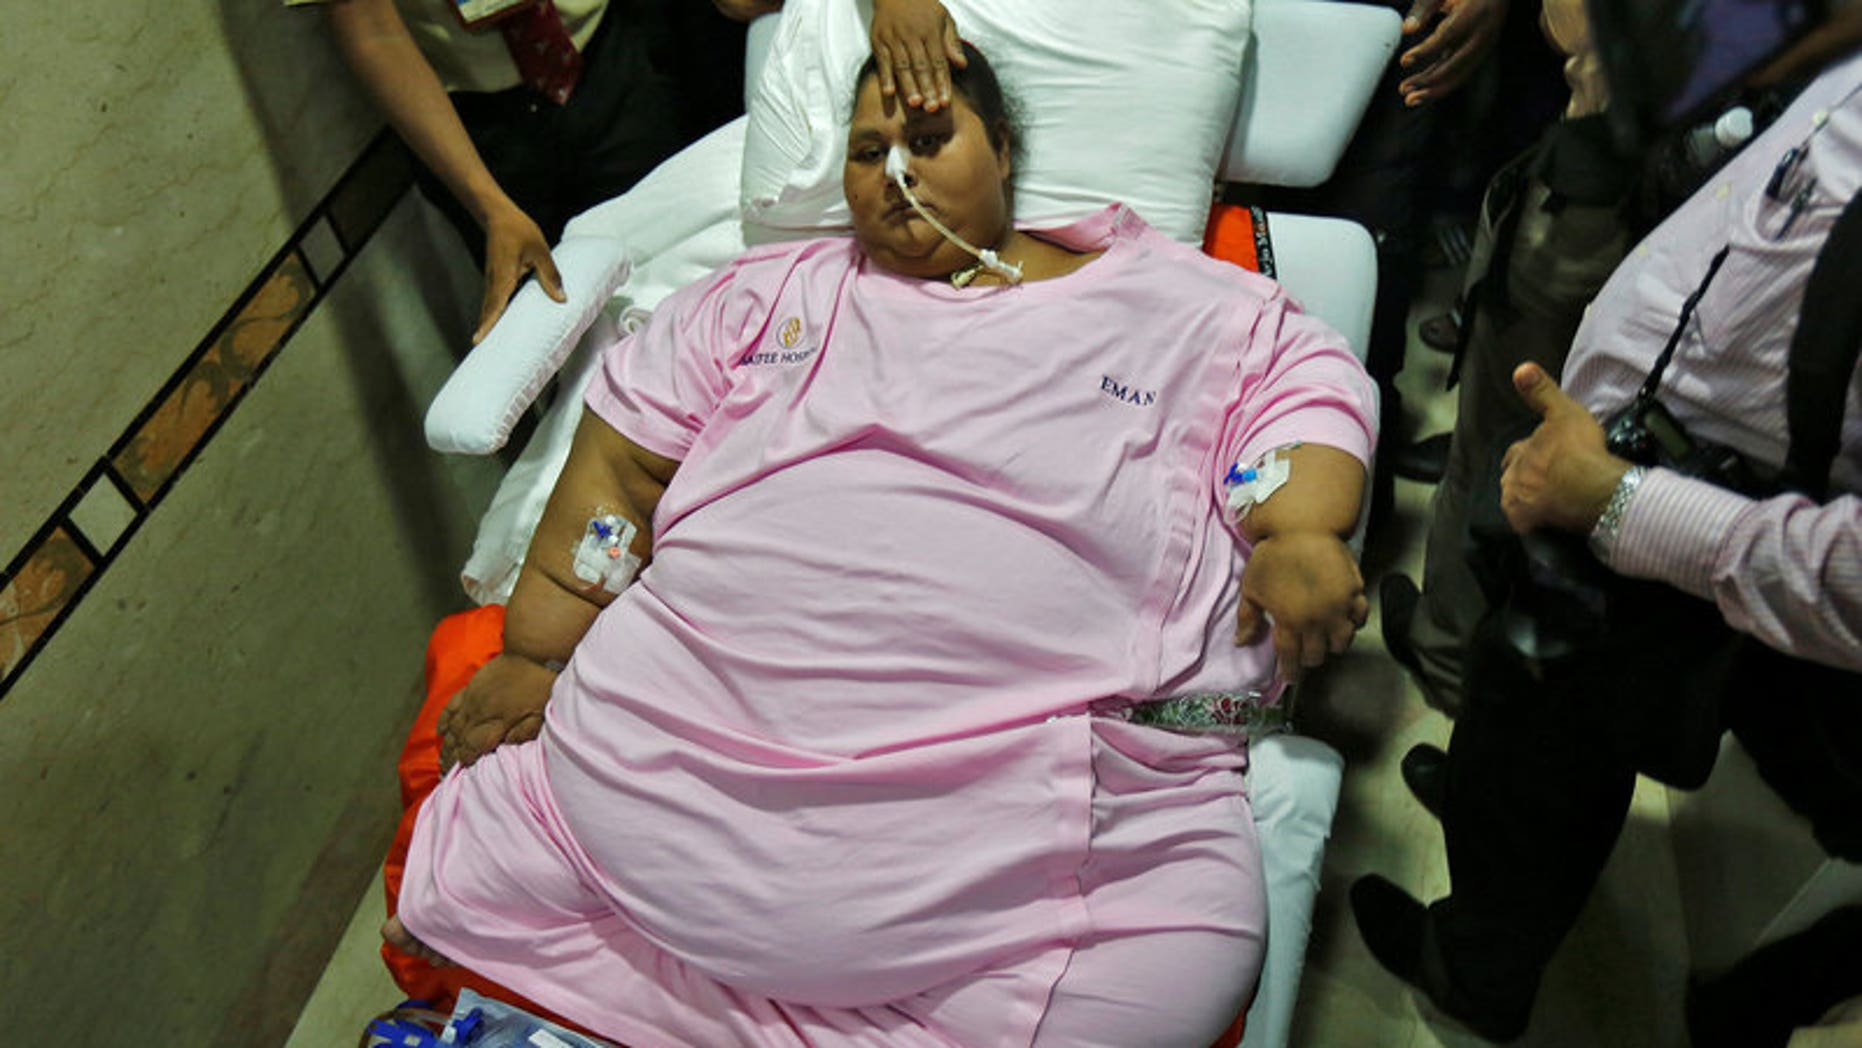 Eman Ahmed, an Egyptian woman who underwent weight loss surgery, is carried on a stretcher as she leaves a hospital in Mumbai